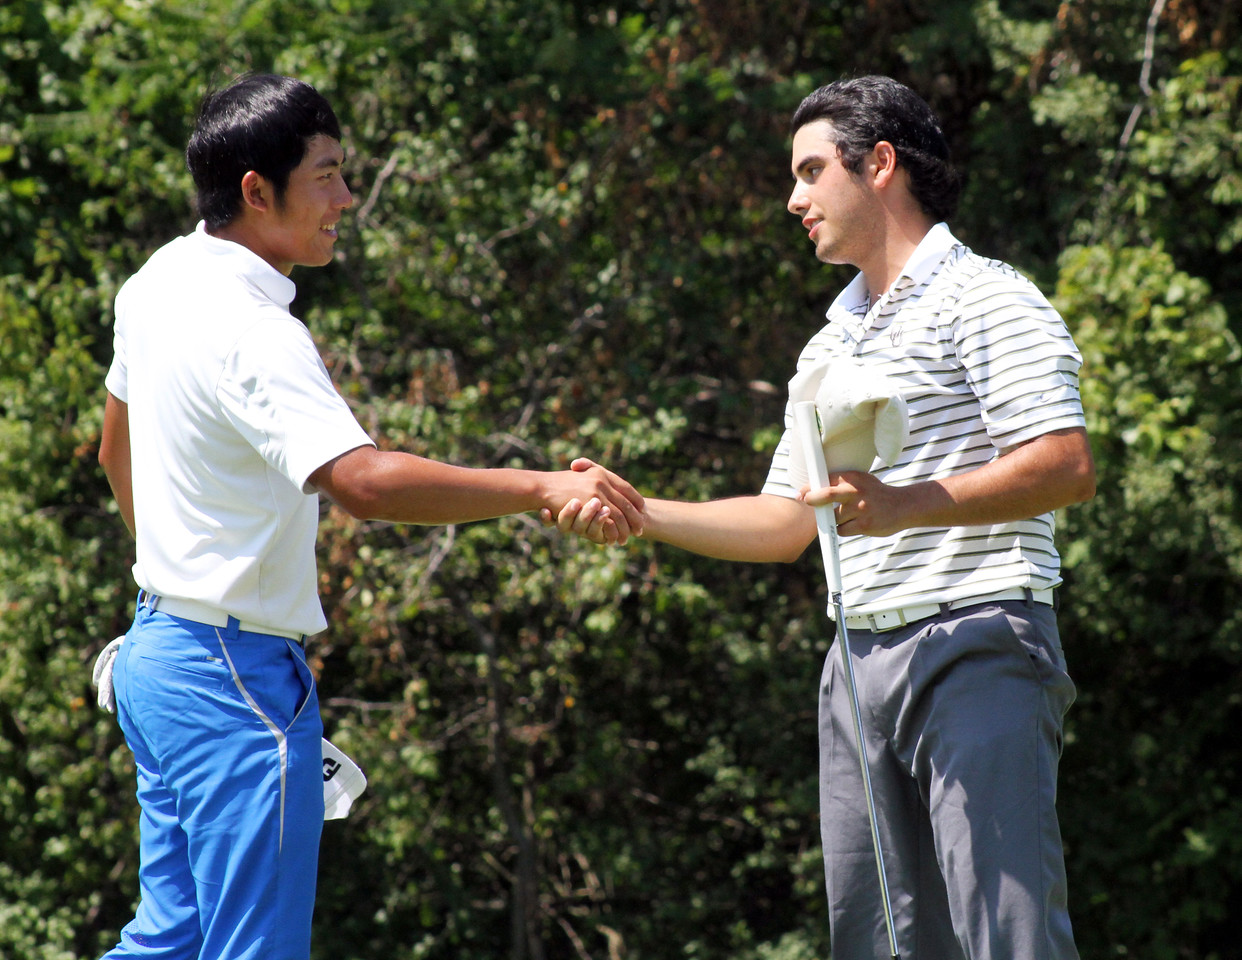 Cheng-Tsung Pan of Taiwan and Abraham Ancer of Mission, Texas shake hands after the 20th hole of their opening match at the 2012 Western Amateur Championship at Exmoor Country Club in Highland Park, IL on Friday, Aug. 3, 2012. (WGA Photo/Ian Yelton)